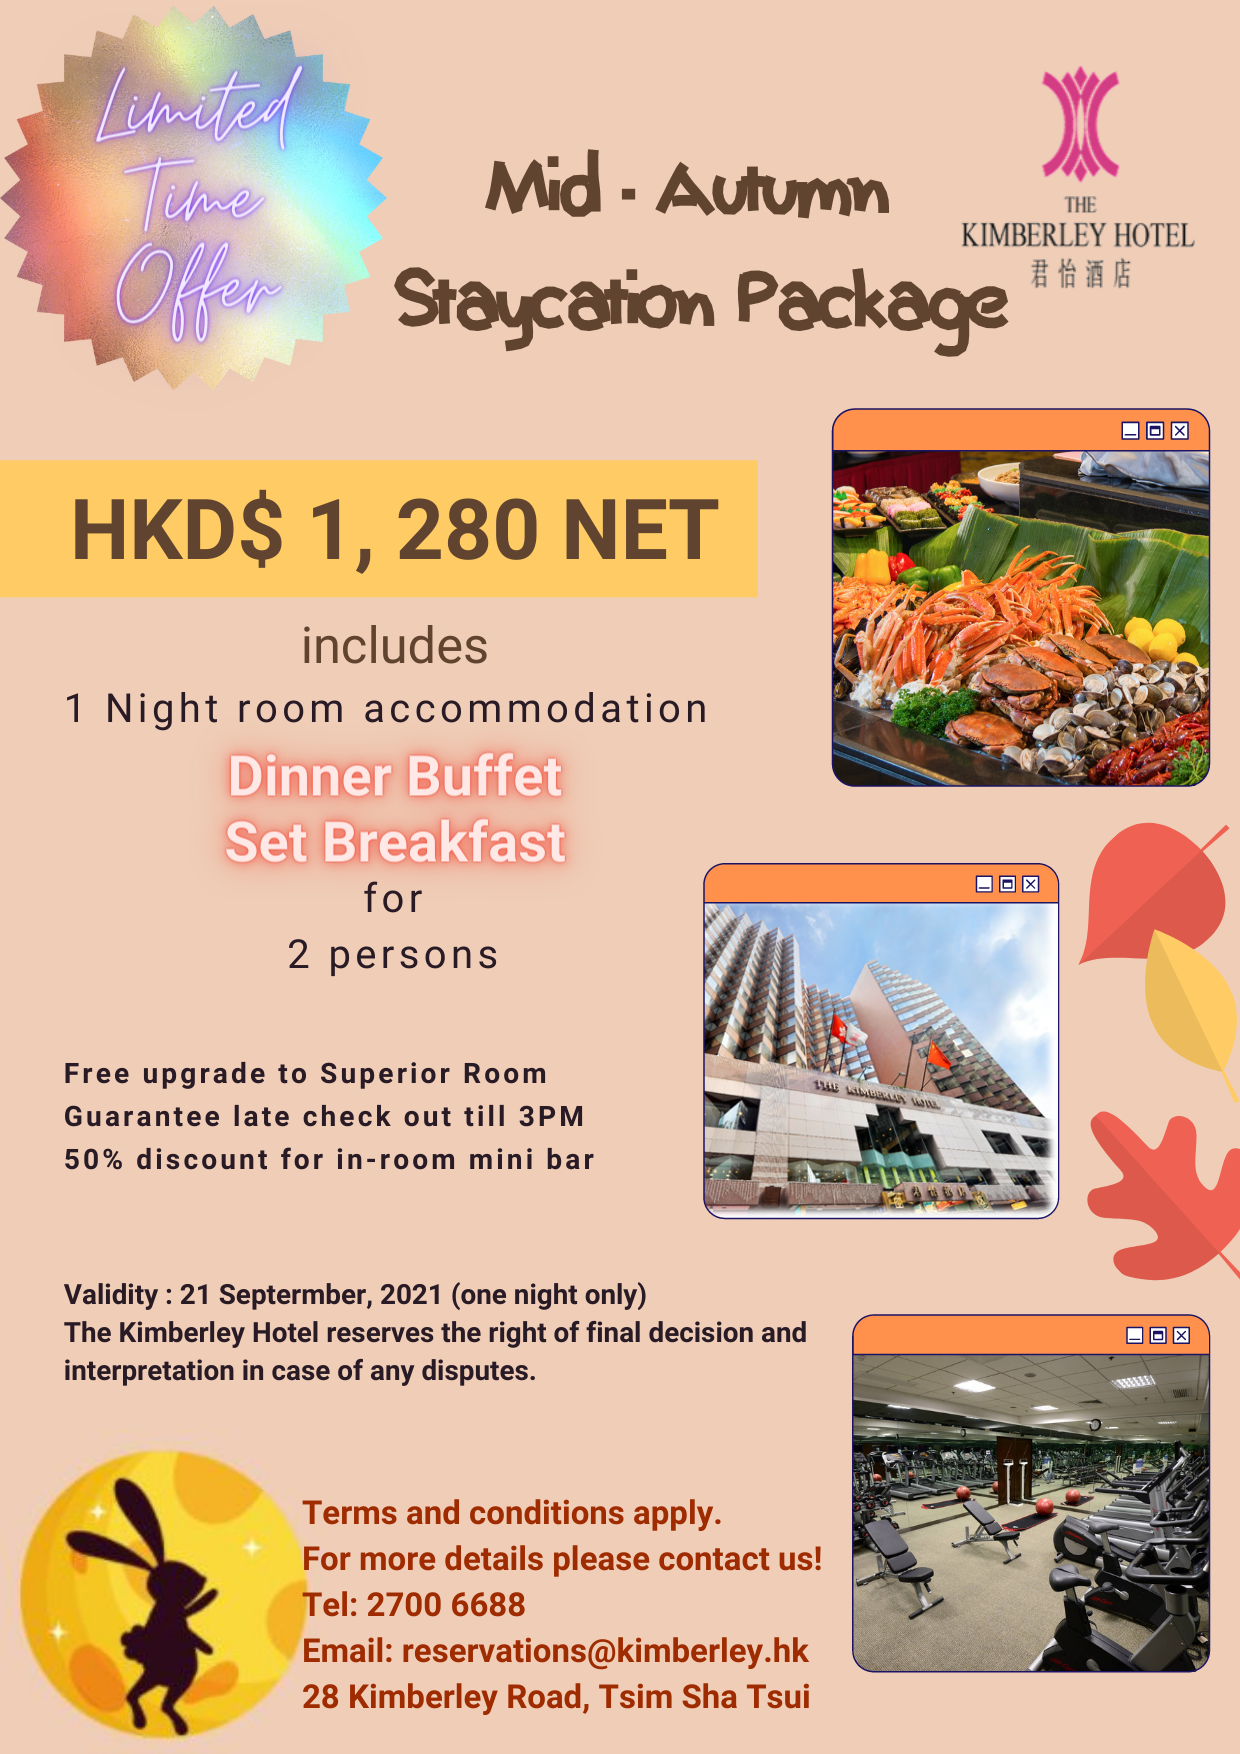 Mid Autumn Staycation Package - kowloon hotel